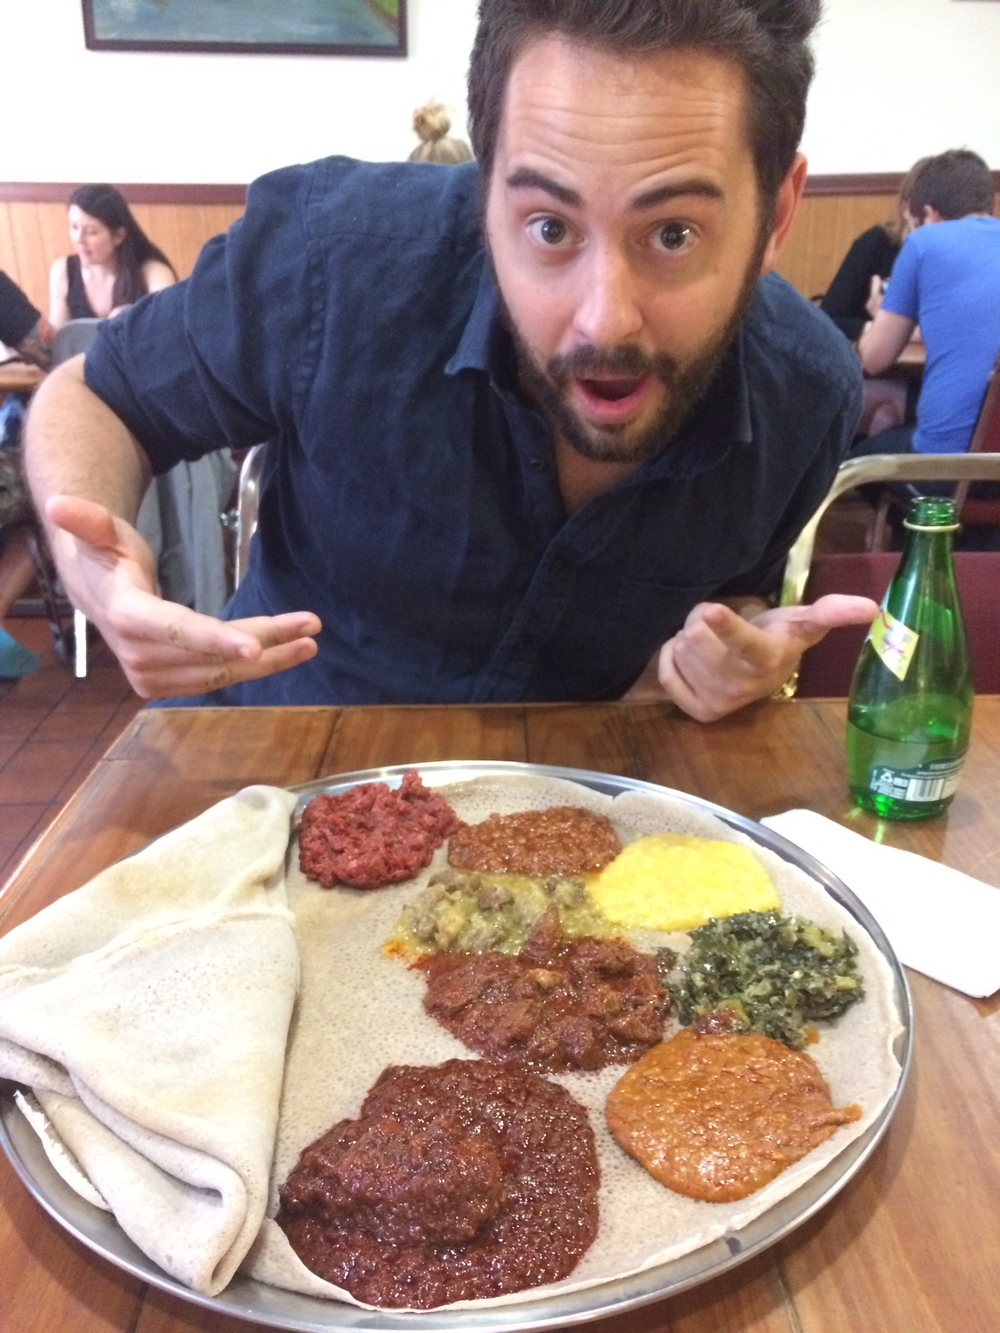 I don't only eat sandwiches. This is an AMAZING platter from Zenebech Injera, a beloved injera bakery and one of the best Ethiopian restaurants in the United States.